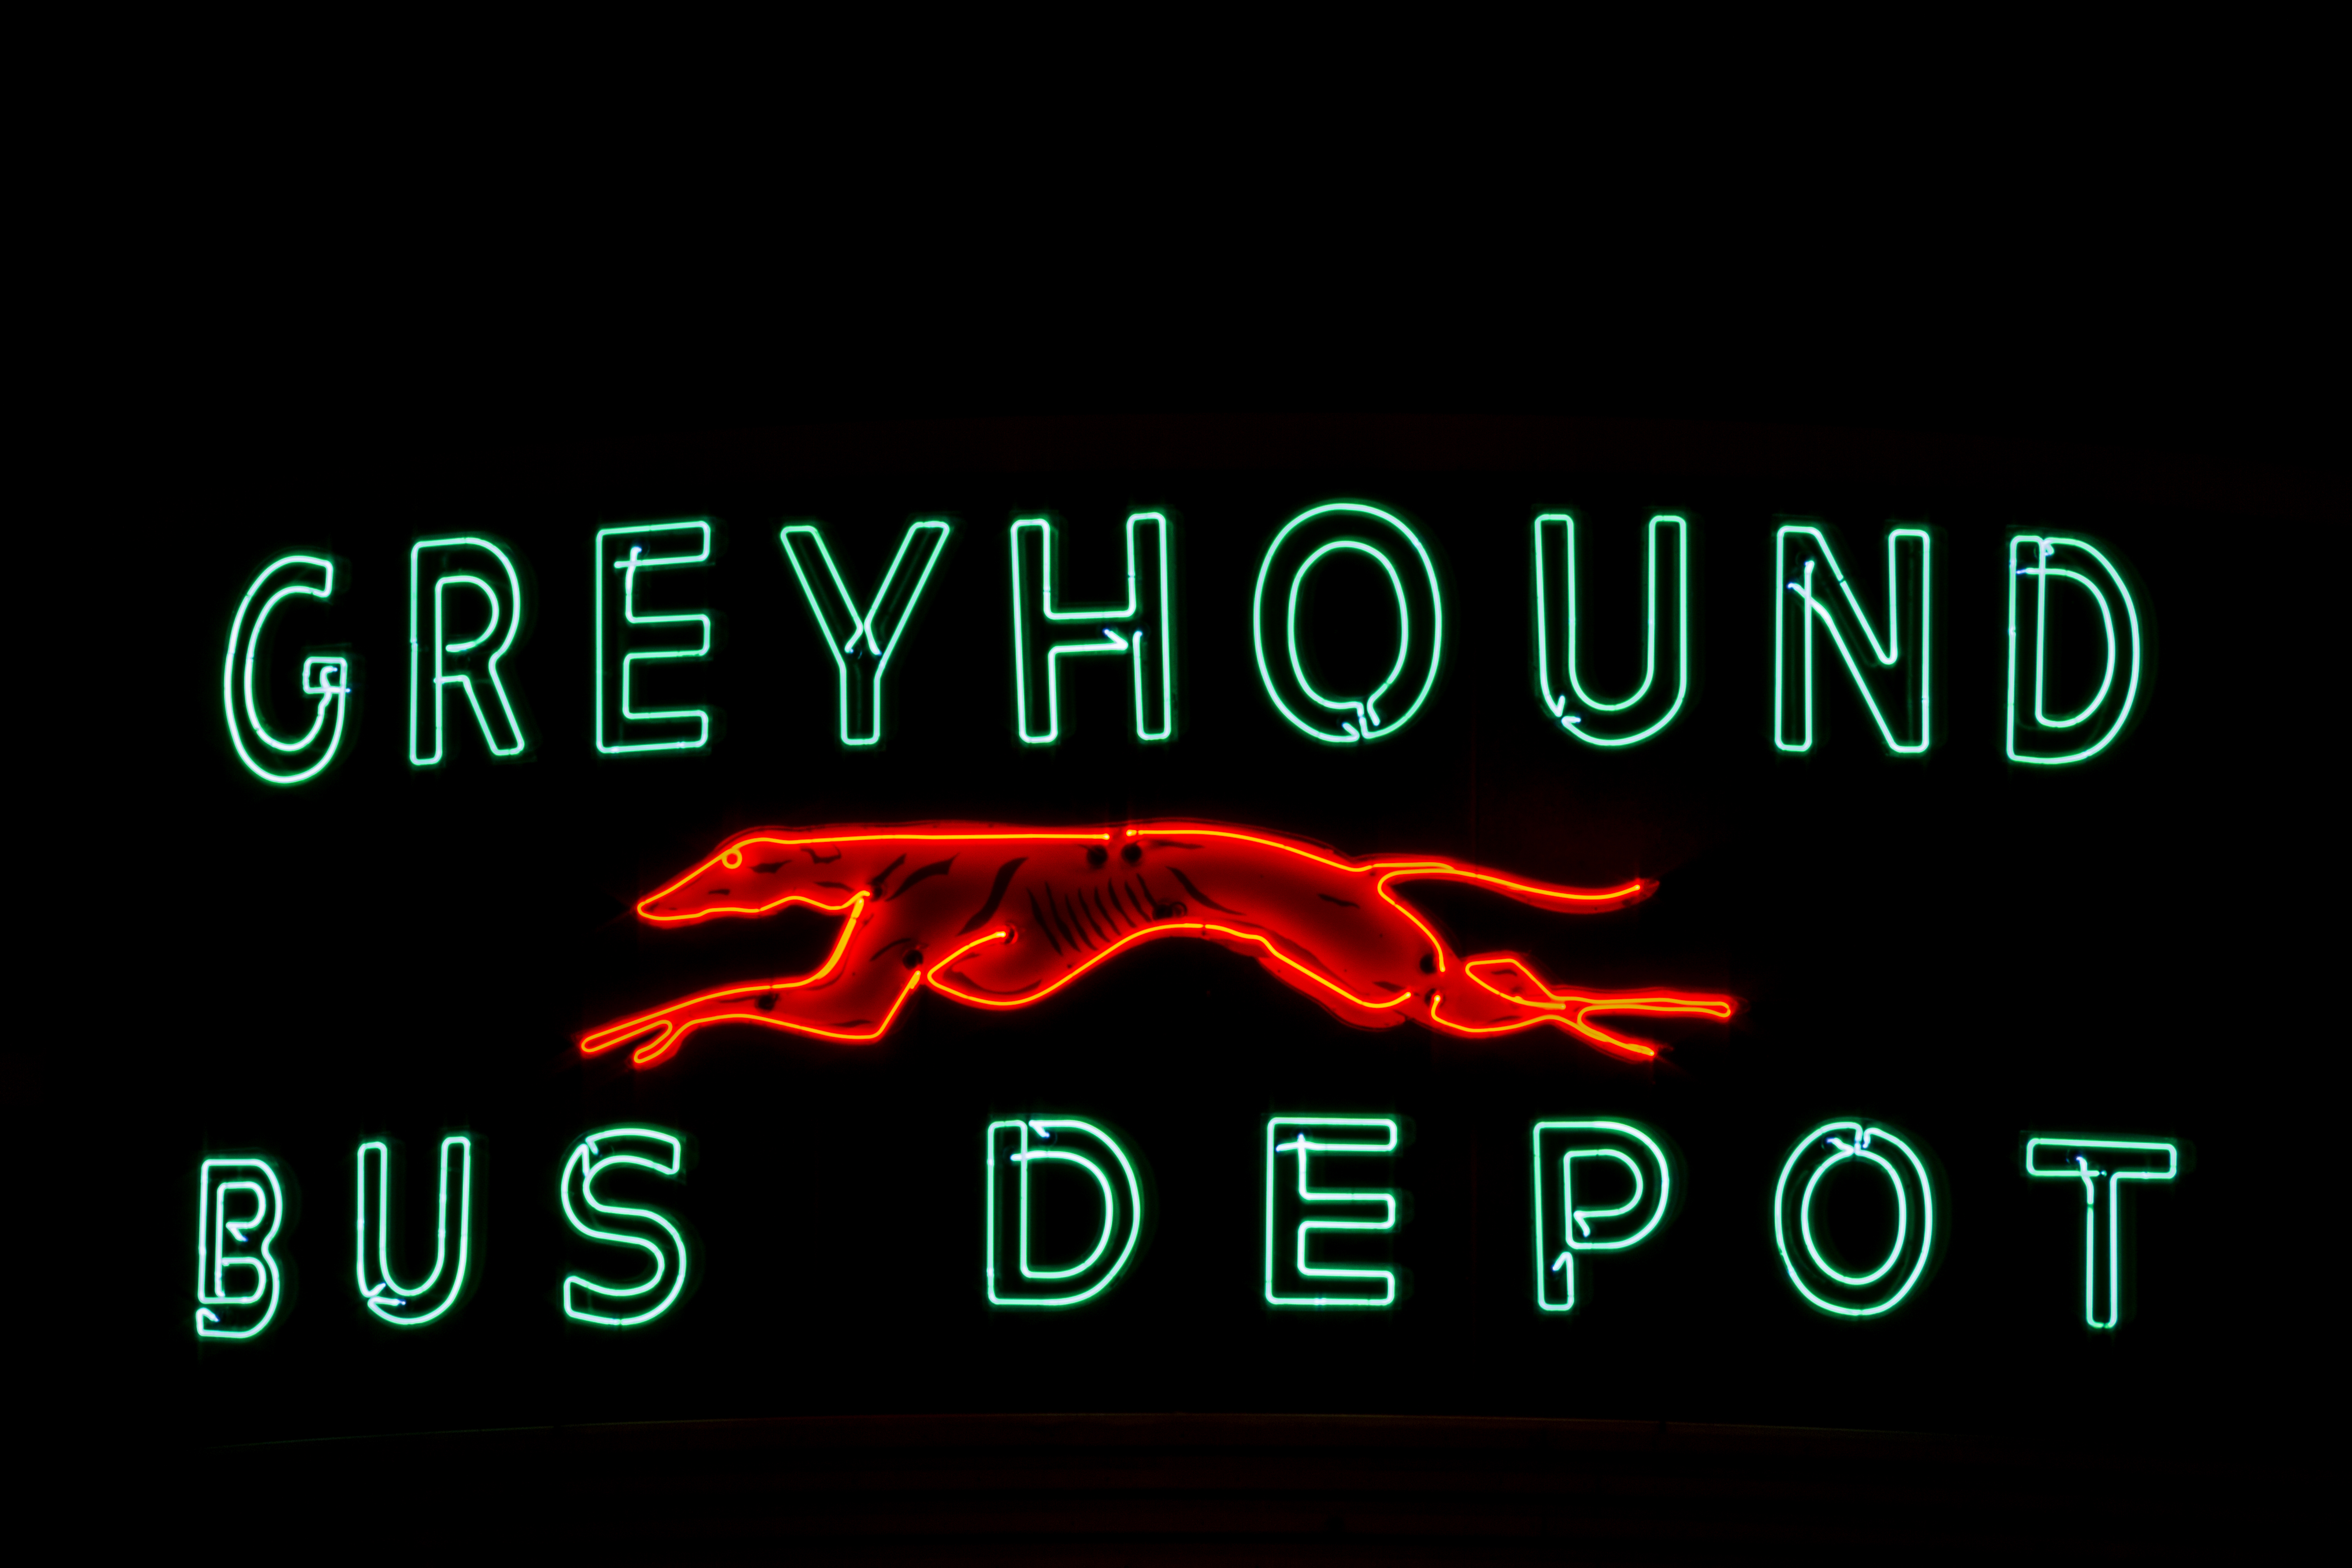 Original Greyhound neon light that is maintained by the TTA for its historical significance and beauty,